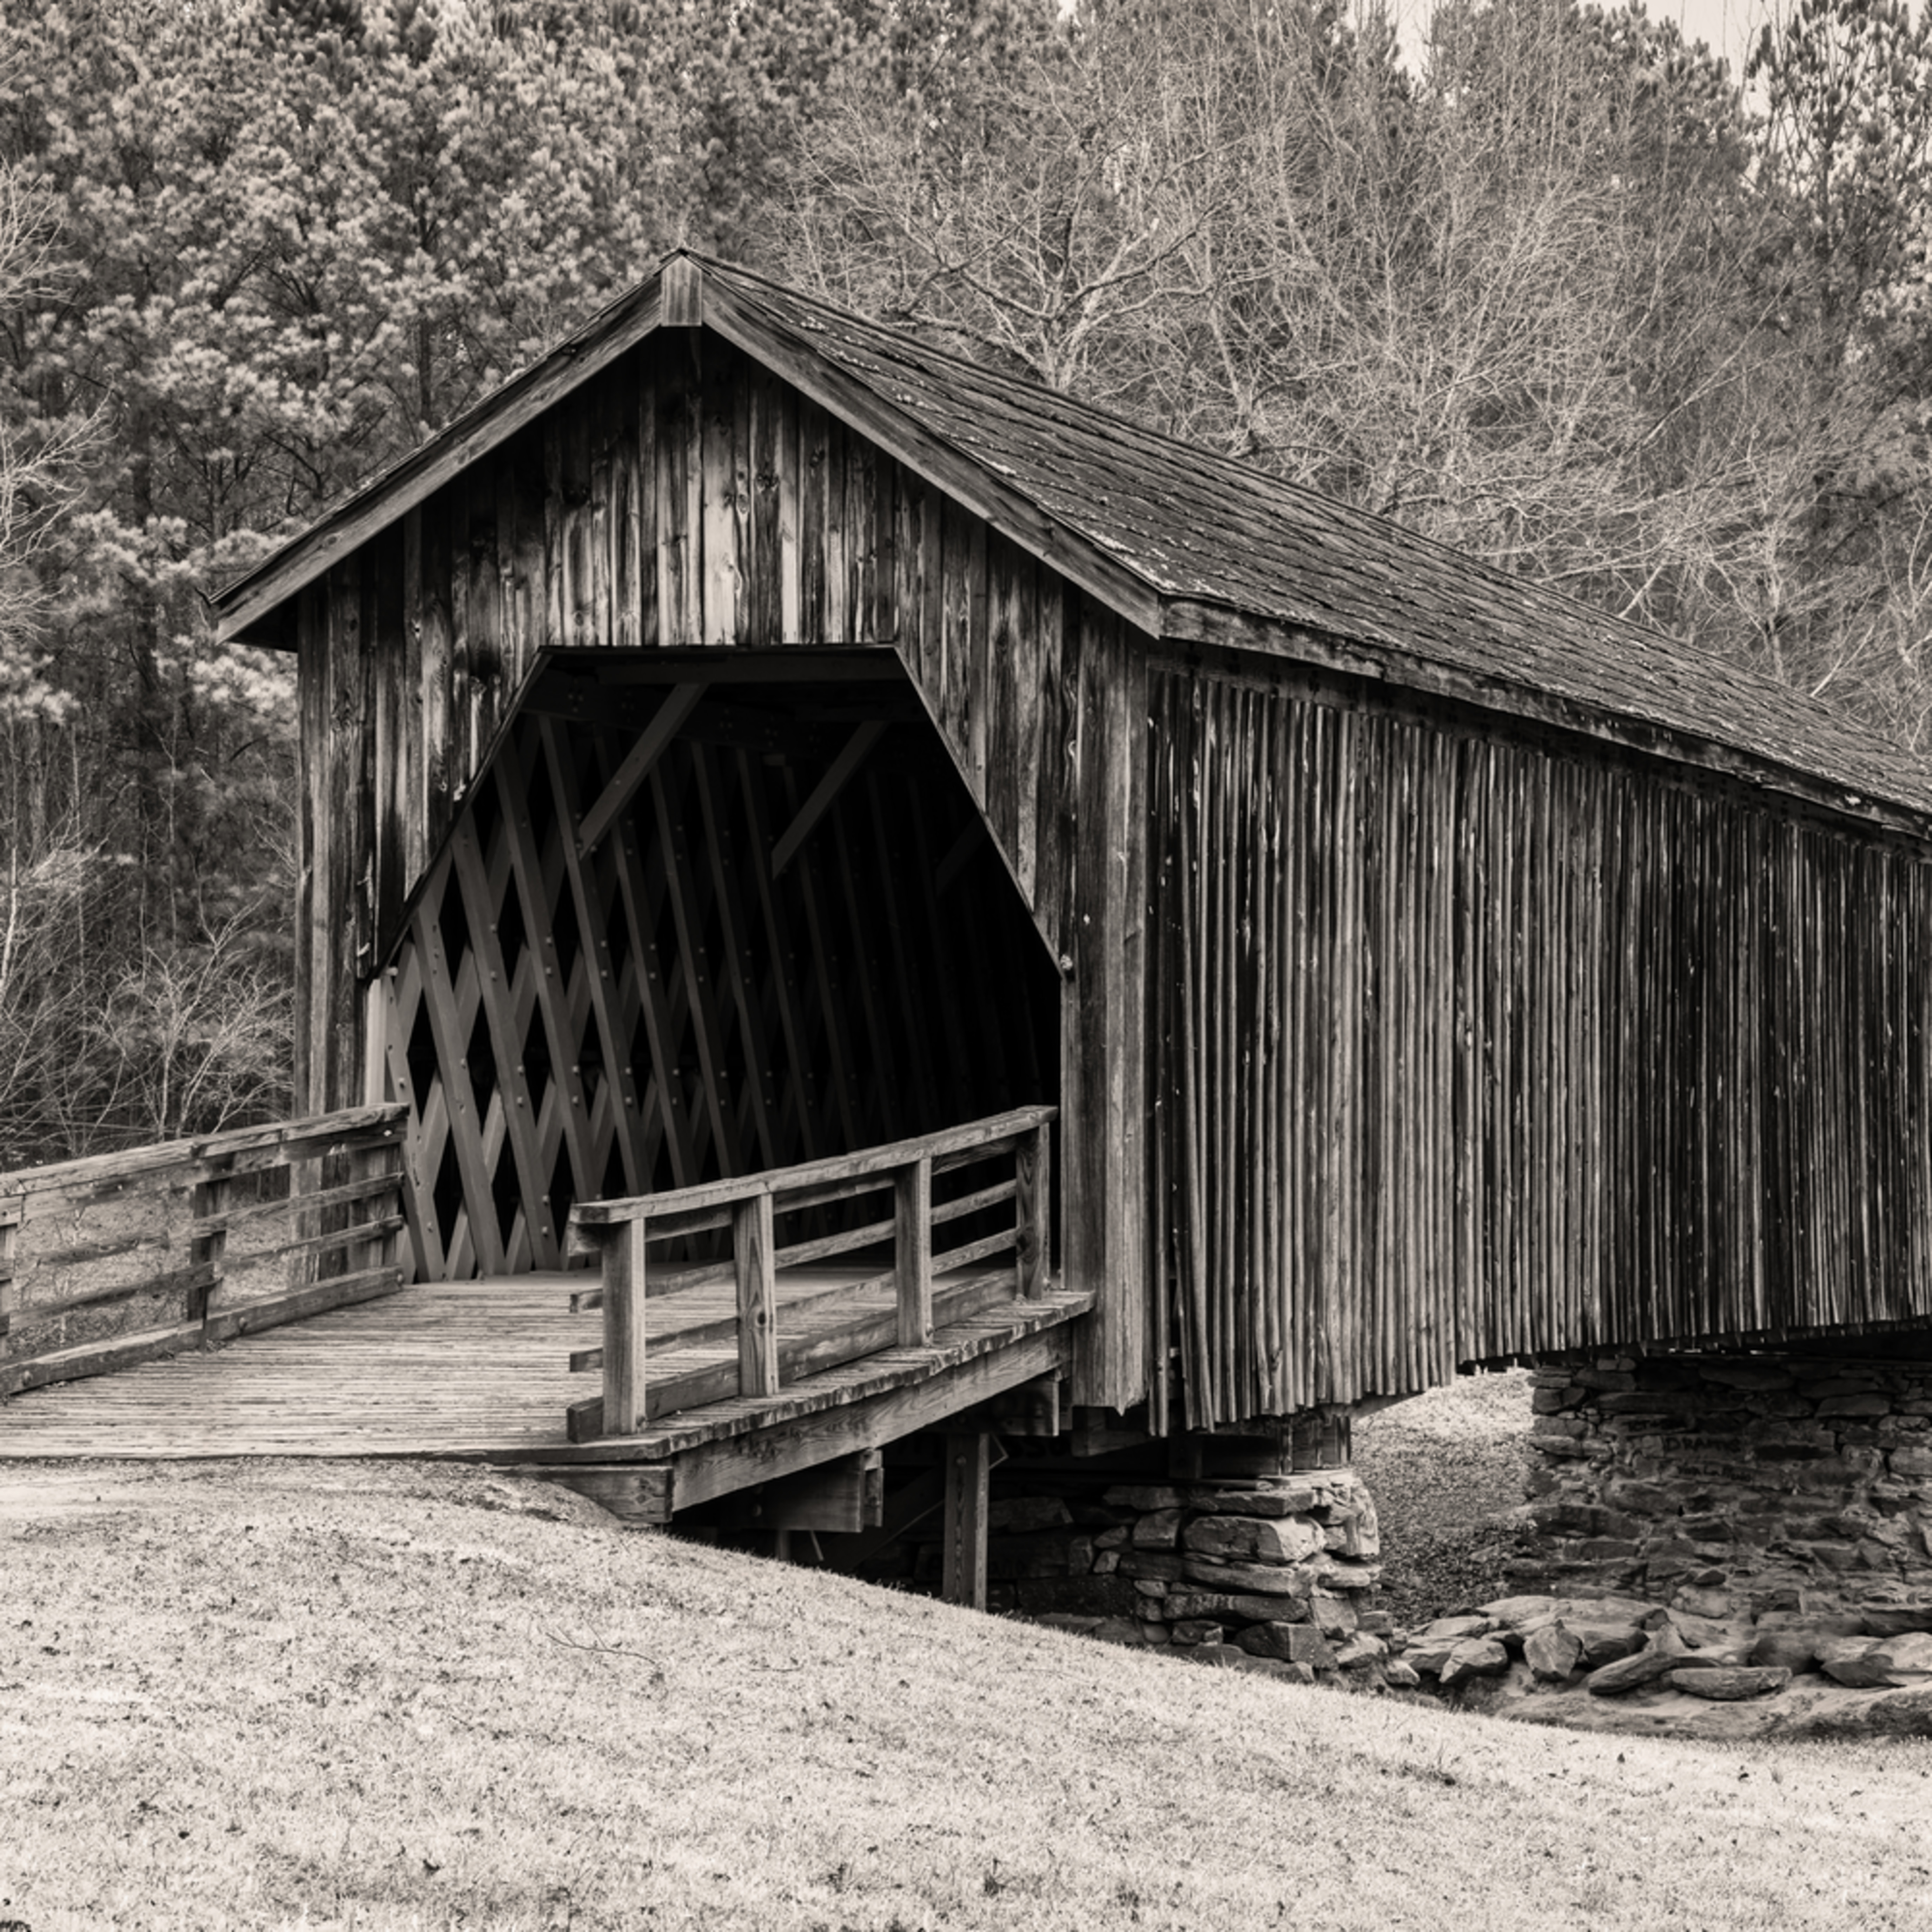 Andyt crawford photography auchumpkee creek bridge 001 cvm1hy